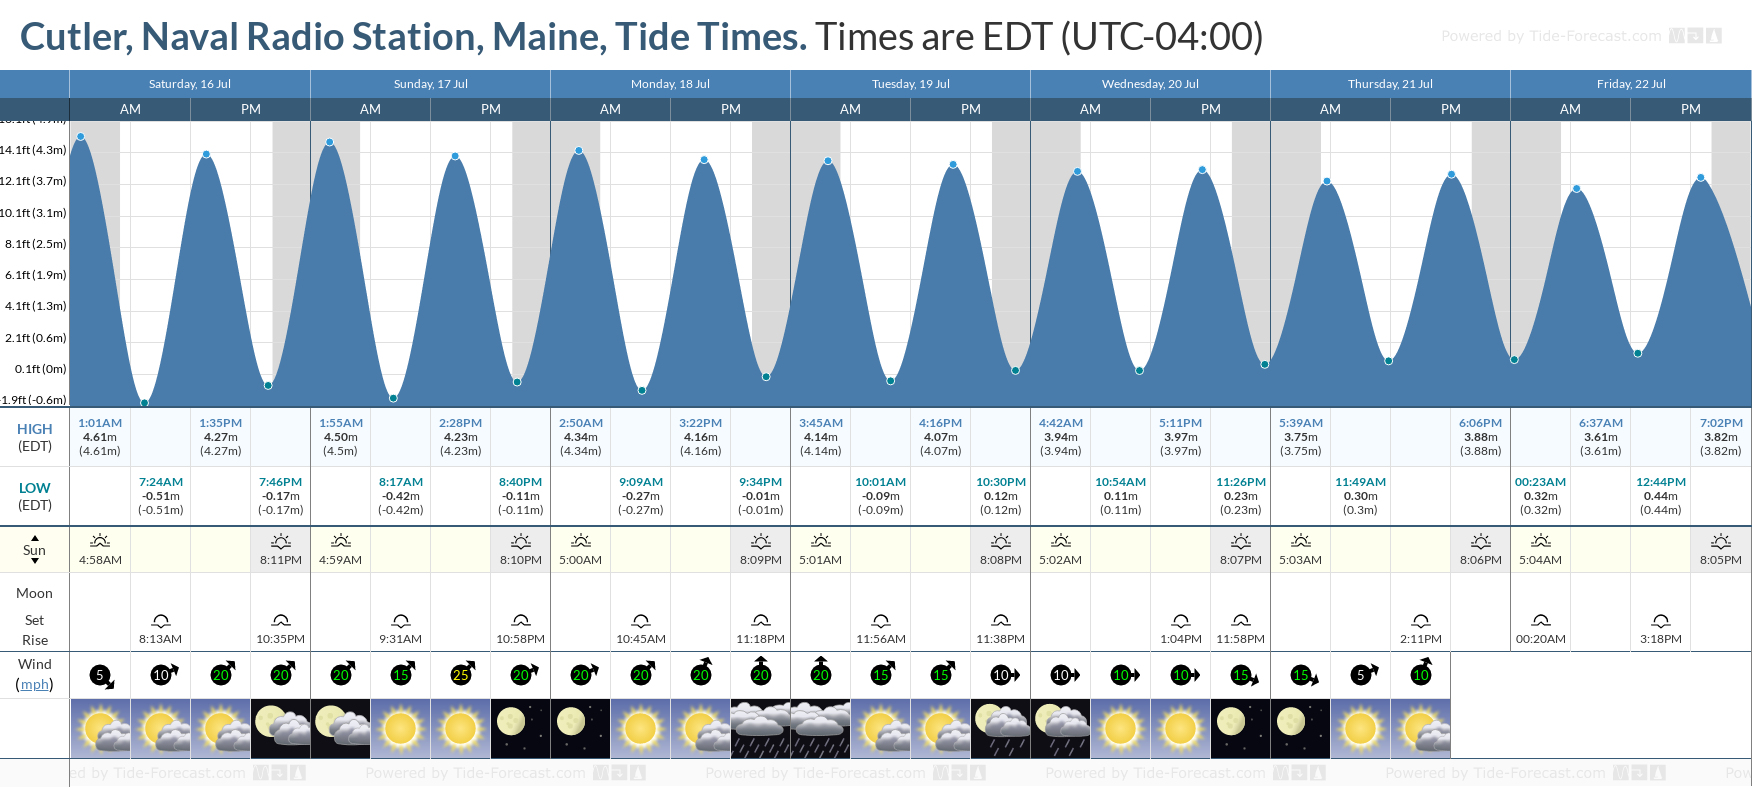 Cutler, Naval Radio Station, Maine Tide Chart including high and low tide tide times for the next 7 days